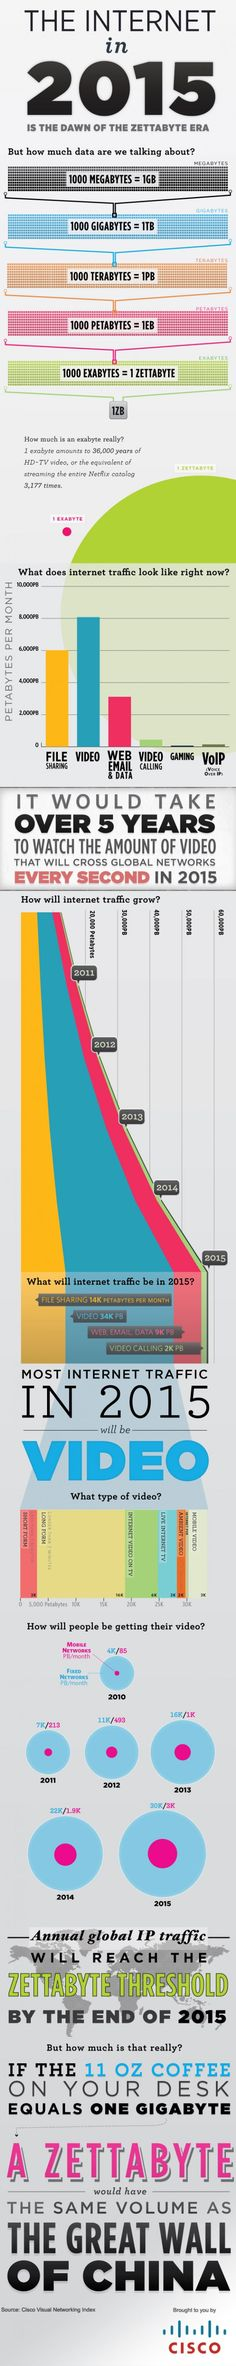 Infographic of The Internet on 2015